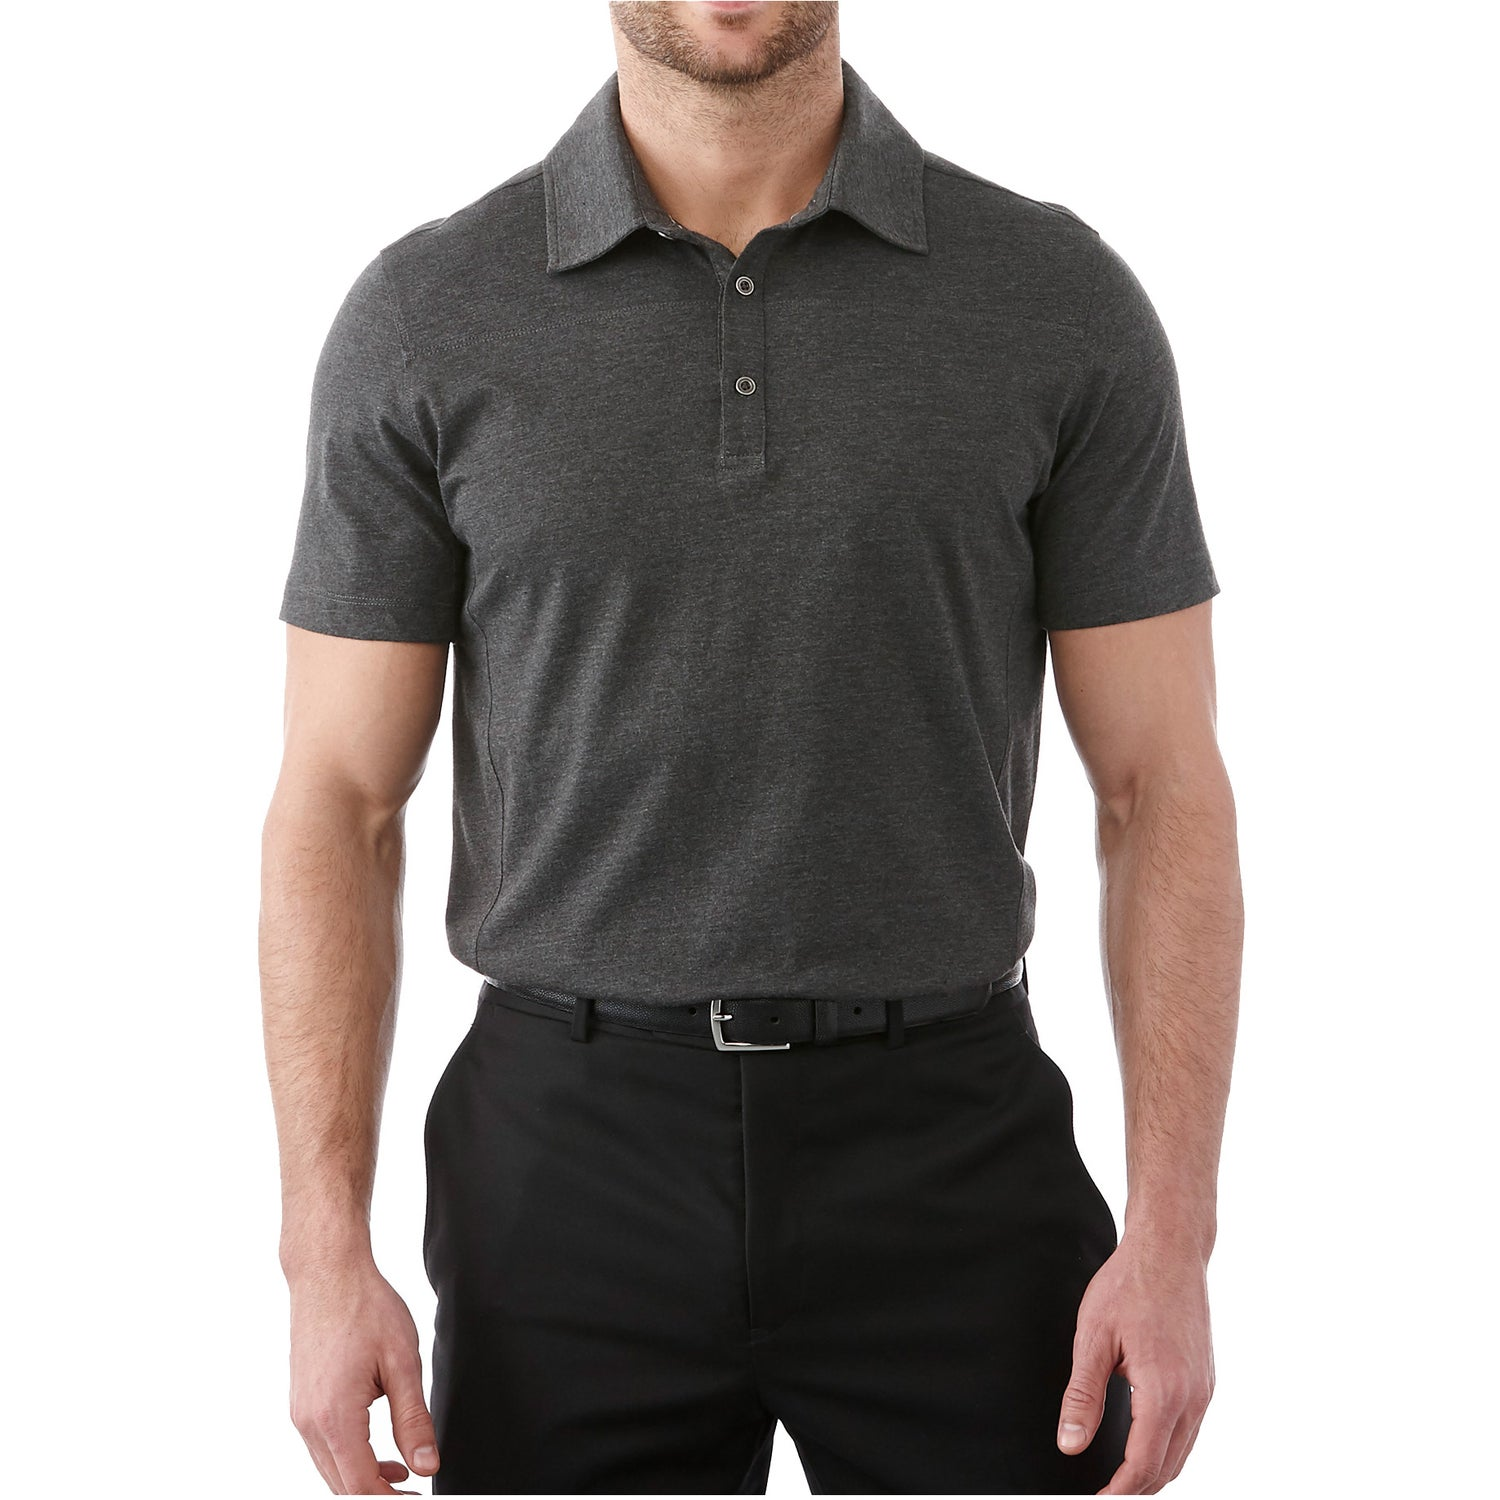 Promotional Mens Concord Short Sleeve Polo By Trimarks With Custom